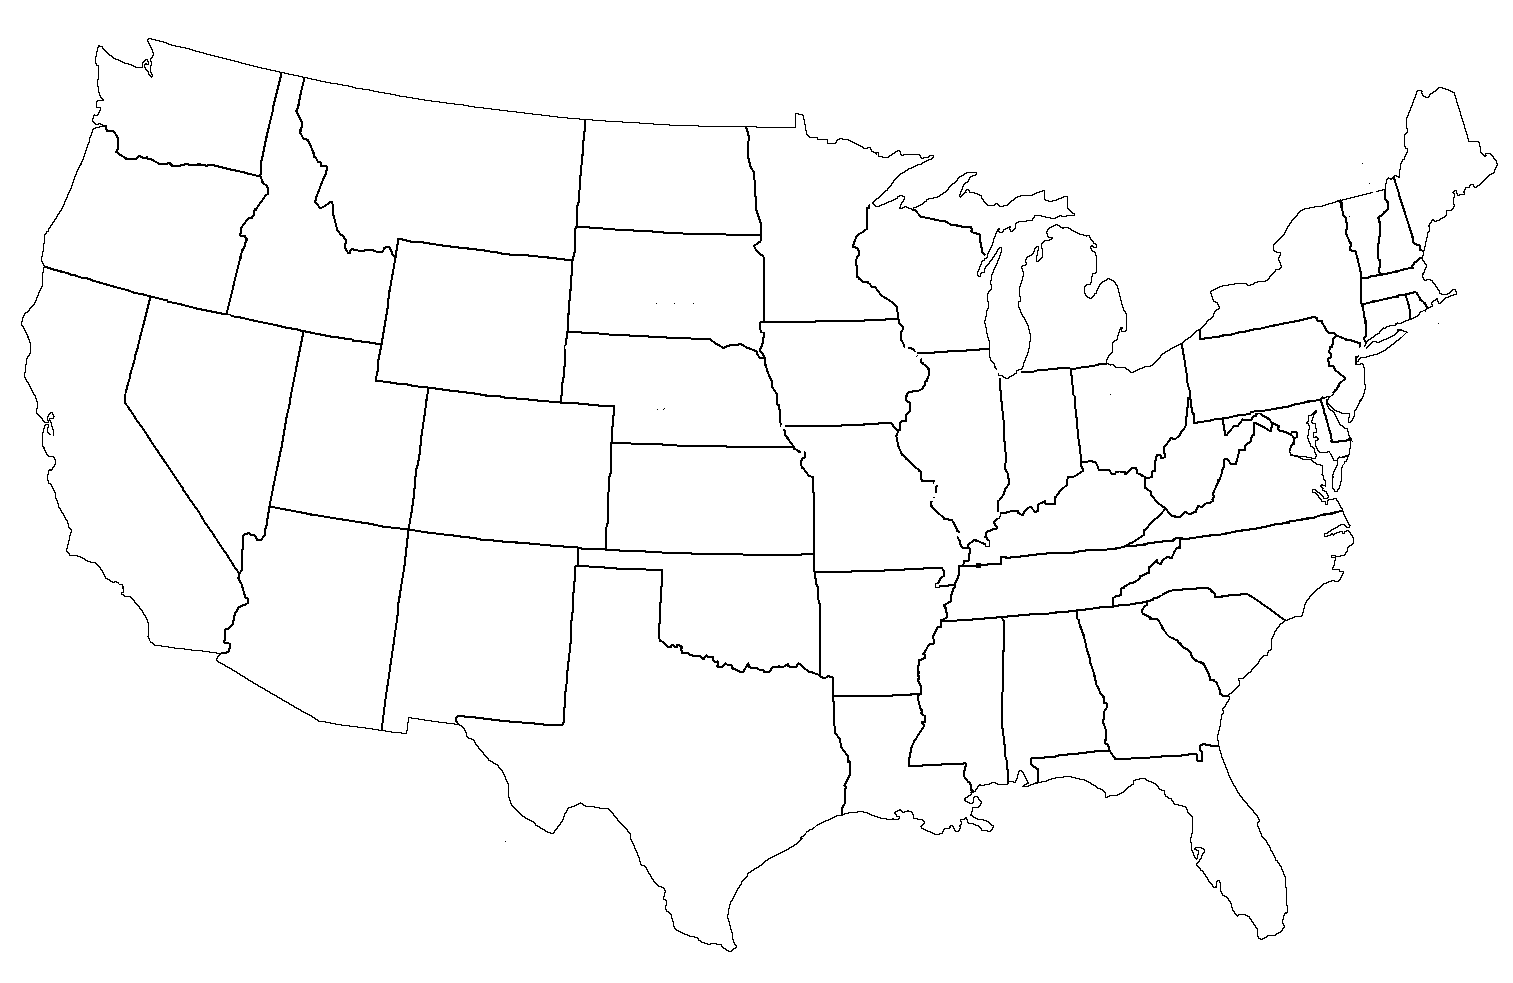 us map templates Idealvistalistco